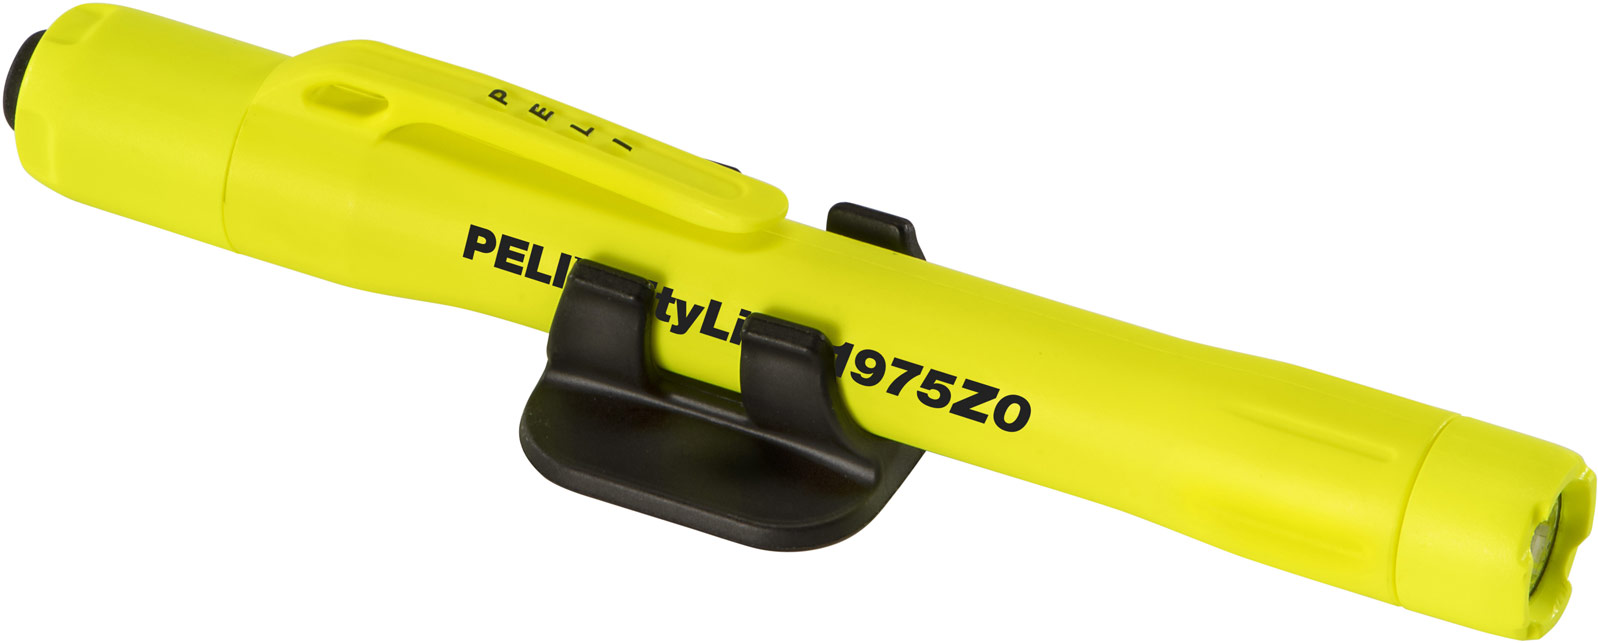 peli mitylite 1975z0 clipflashlight